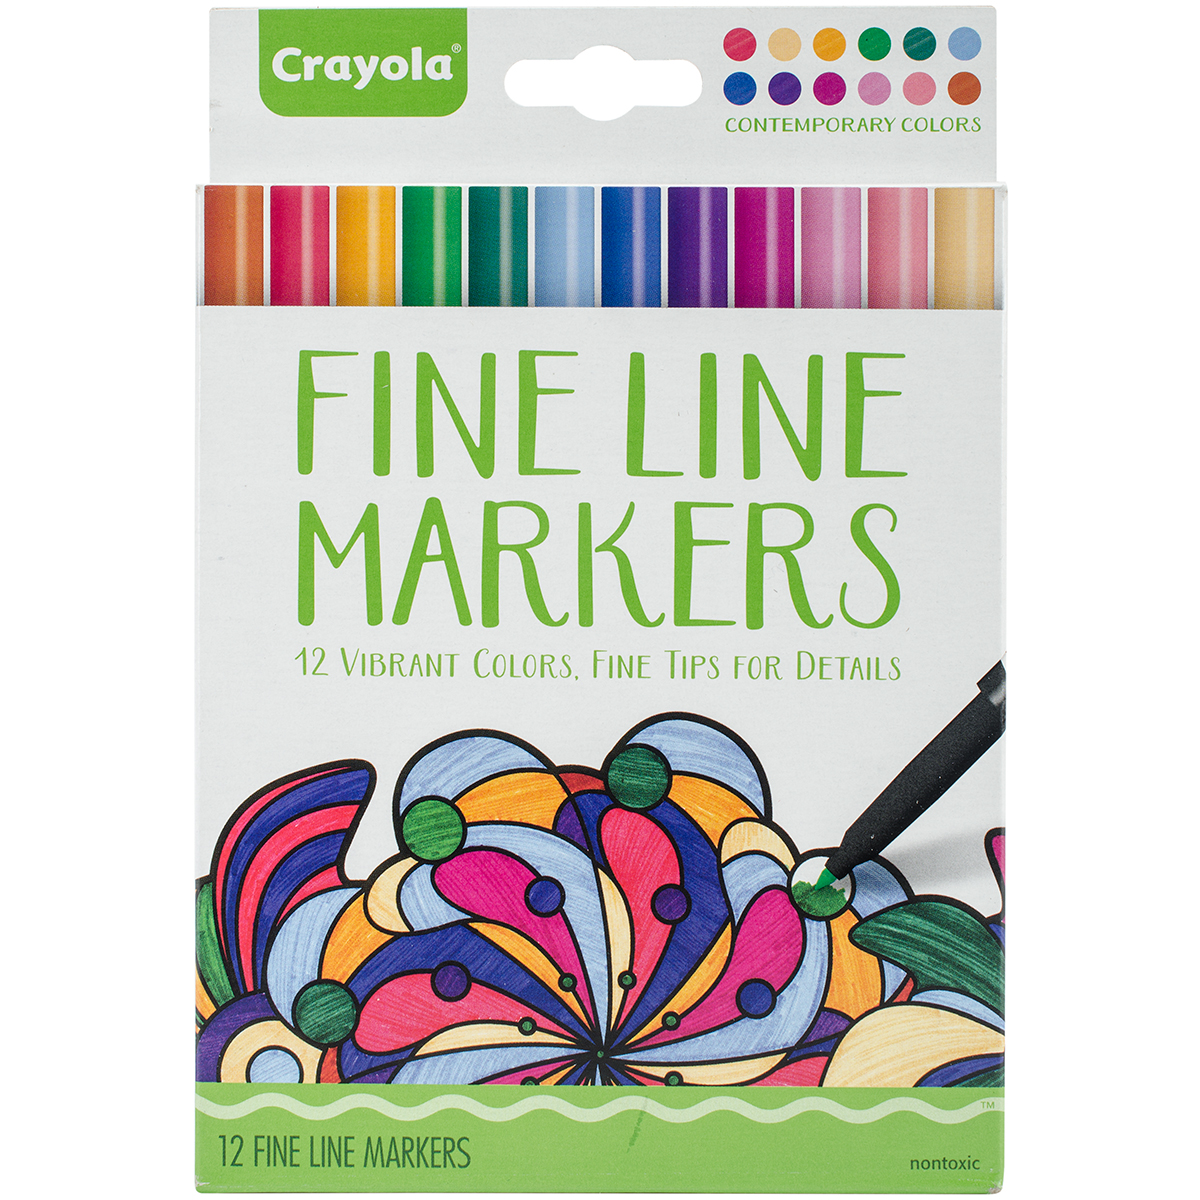 Crayola 12 Count Contemporary Adult Coloring Fine Line Marker by Crayola